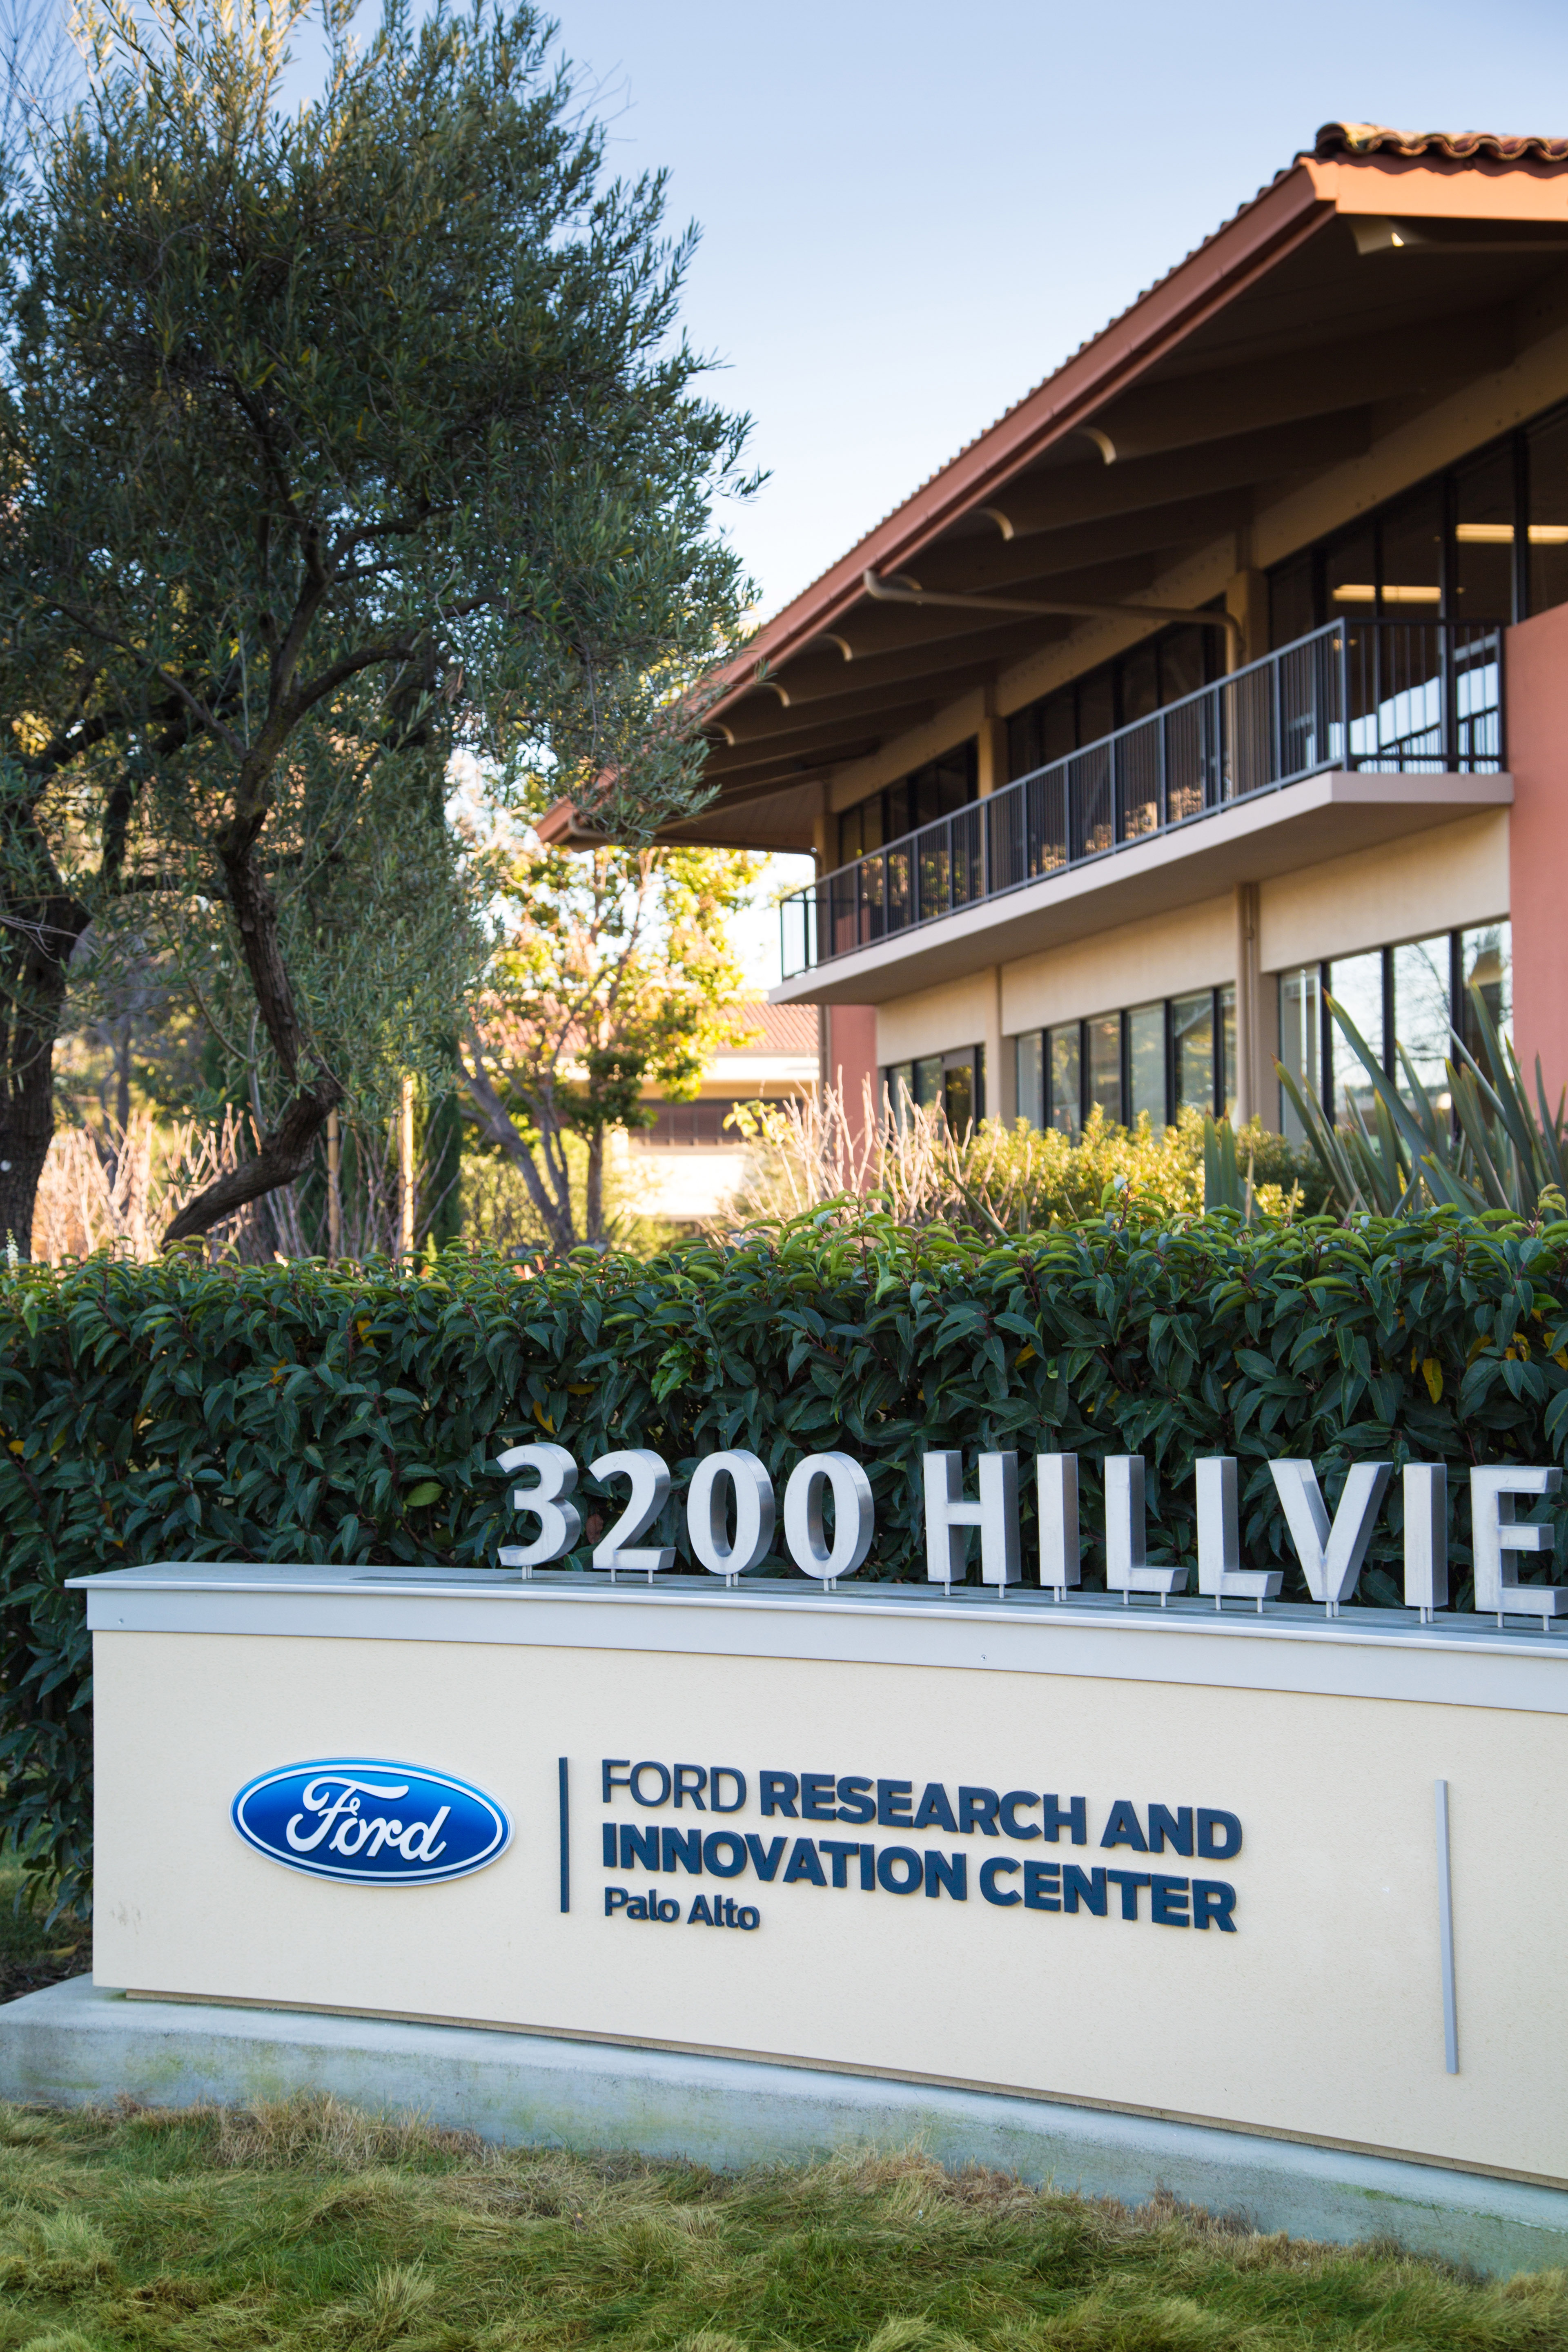 Ford is opening the Research and Innovation Center Palo Alto, Calif. to accelerate its development of technologies and experiments in connectivity, mobility, autonomous vehicles, customer experience and big data.